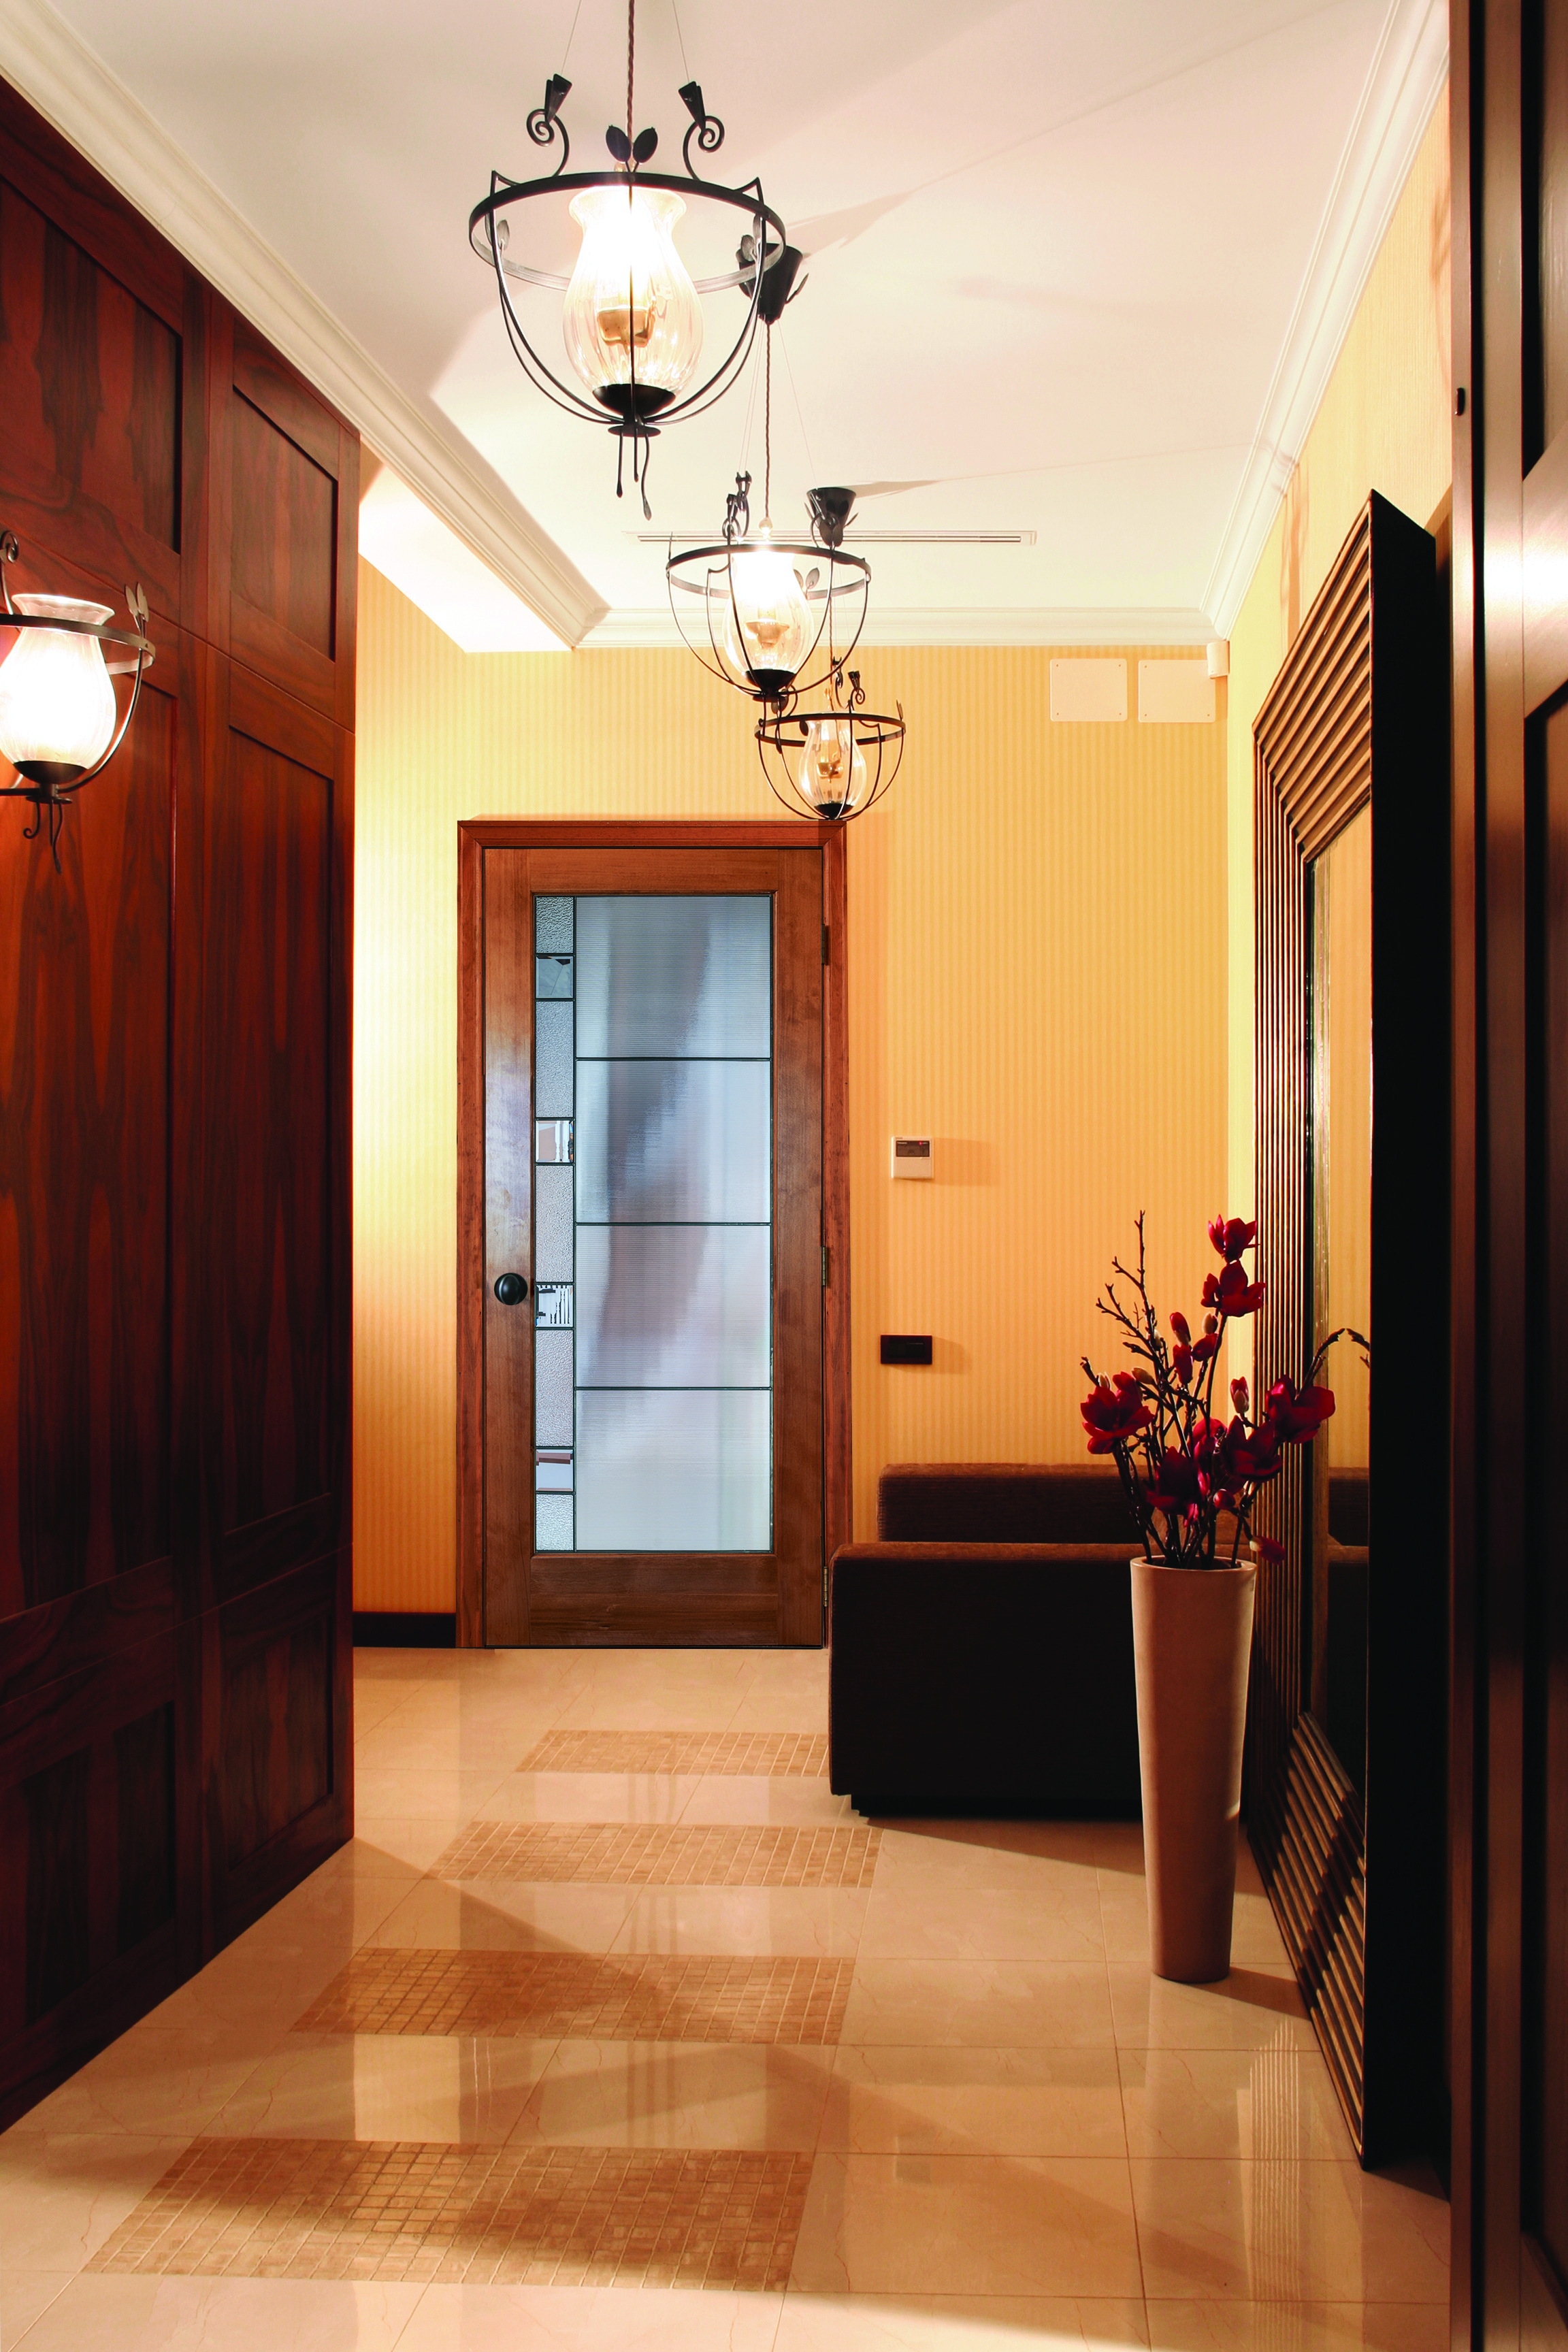 grade door wikipedia and durasteel stainless fire tall rated industrial blast doors to hydrocarbon curve wiki interior resistance